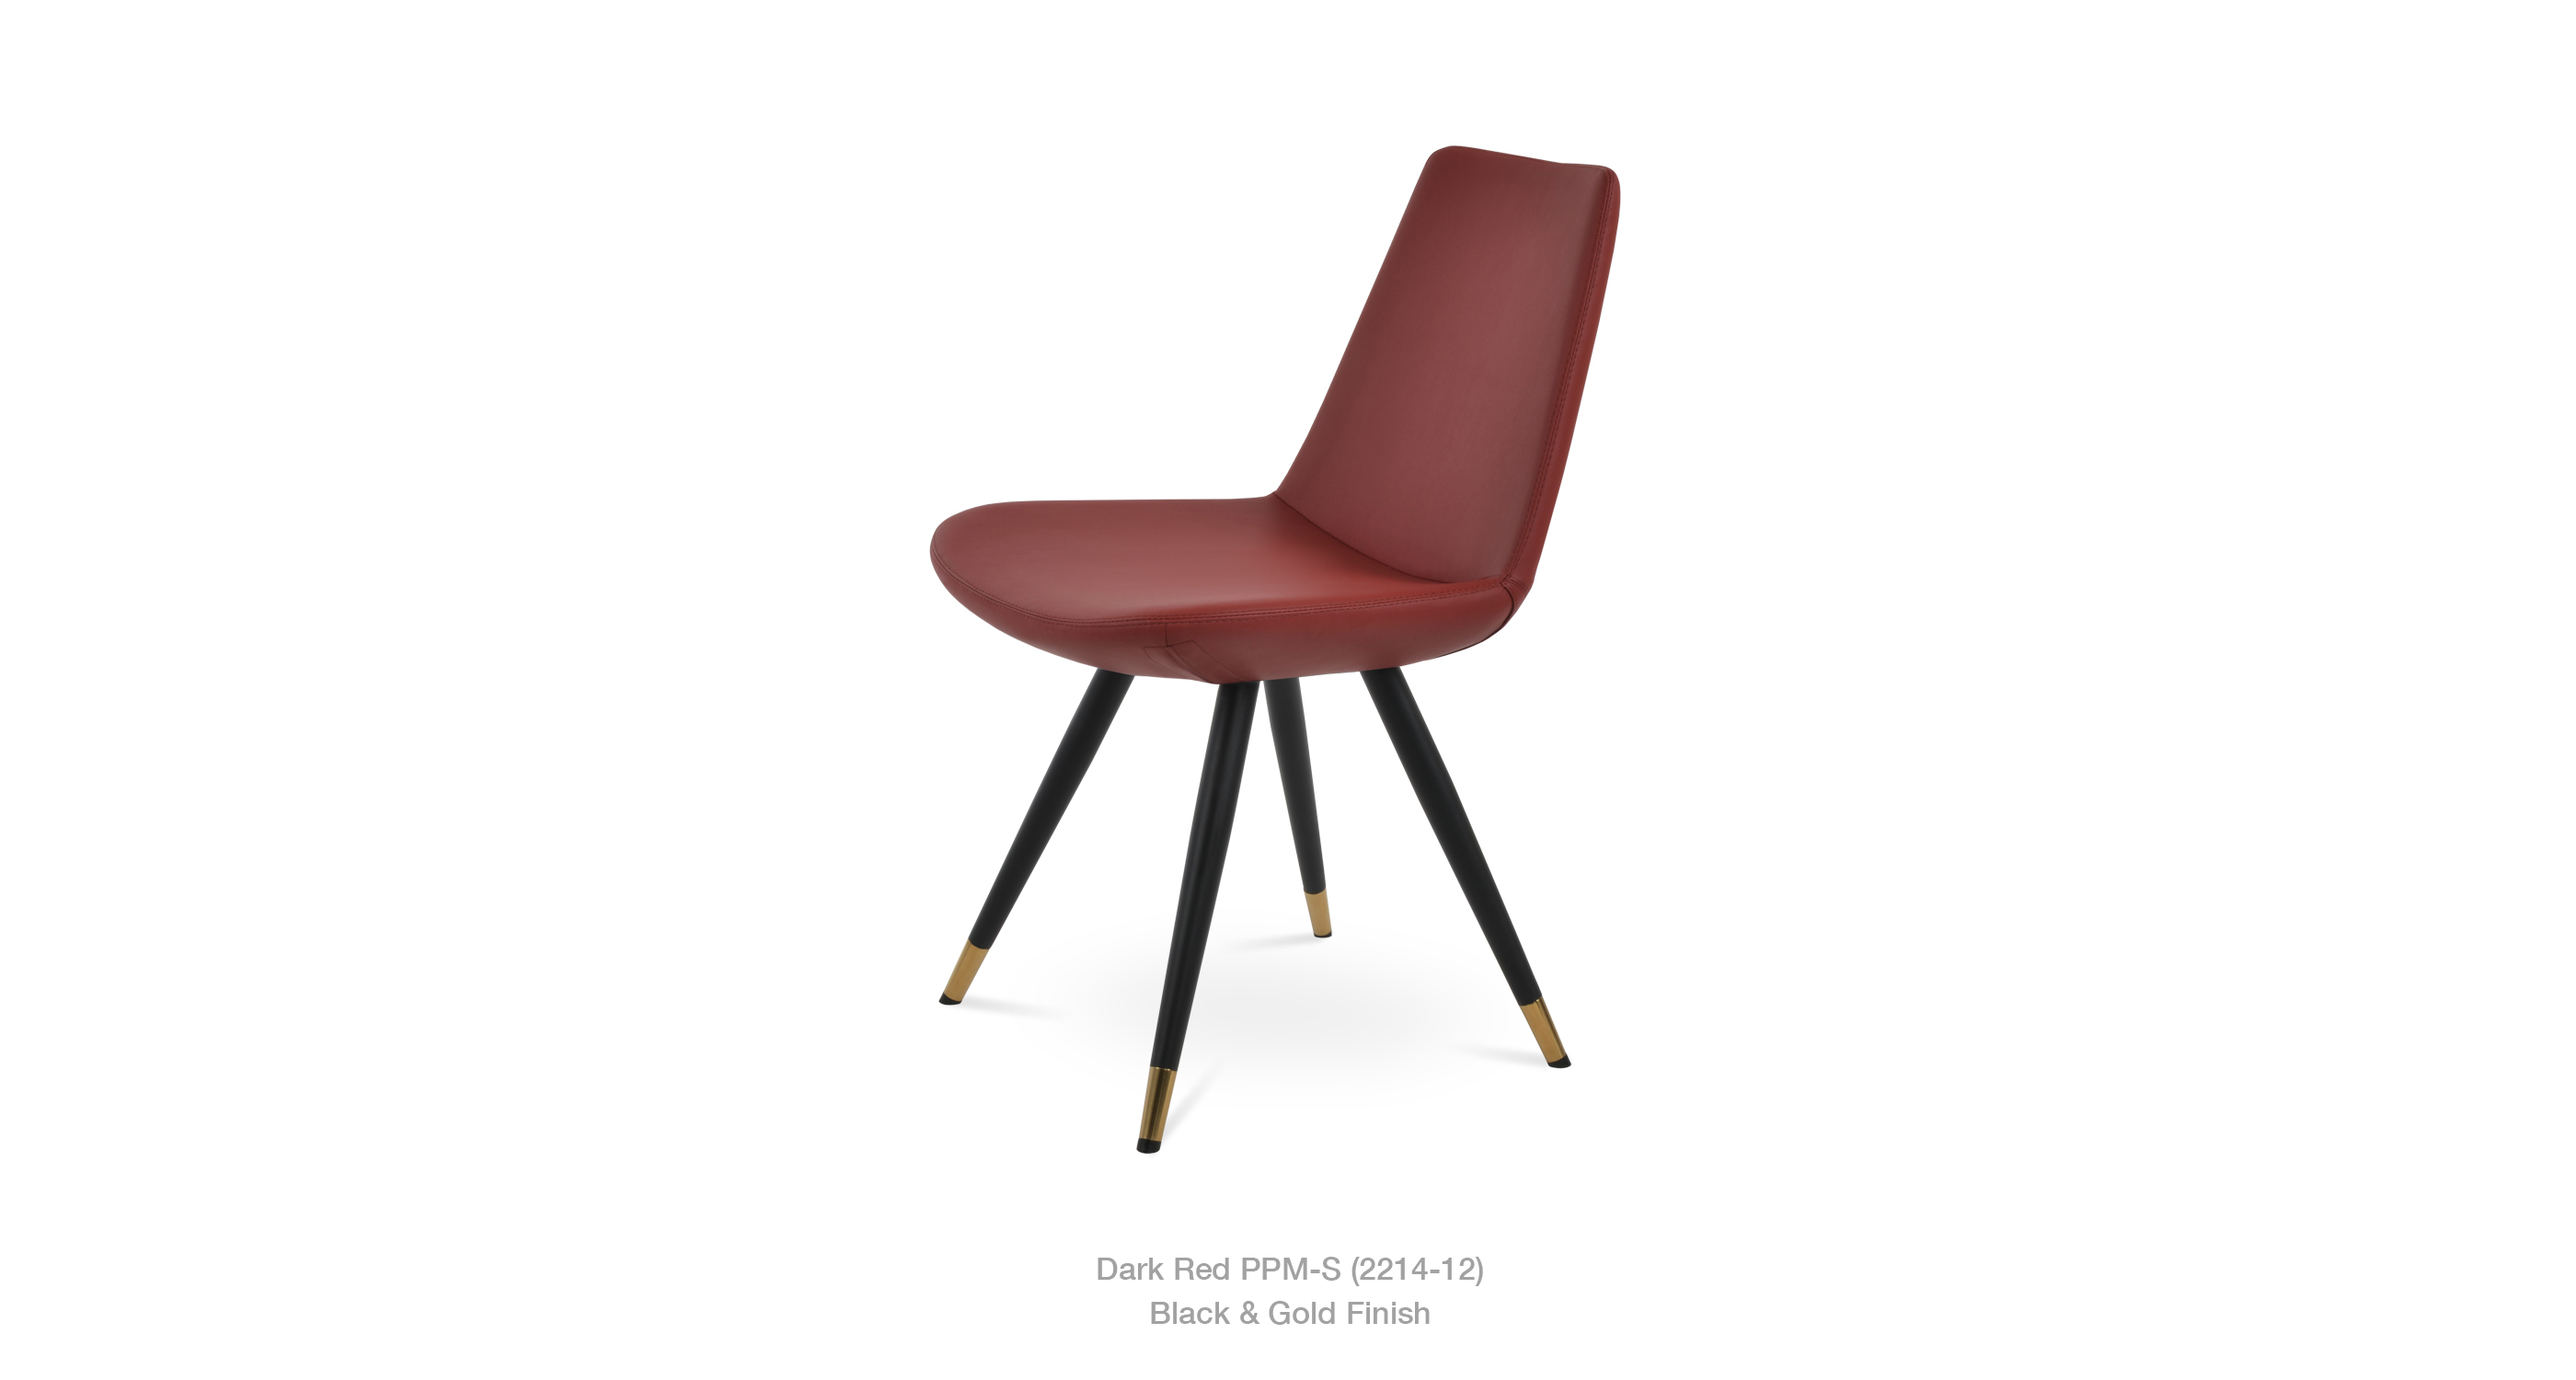 2020 03 03 Eiffel Star Dark Red Ppm Black